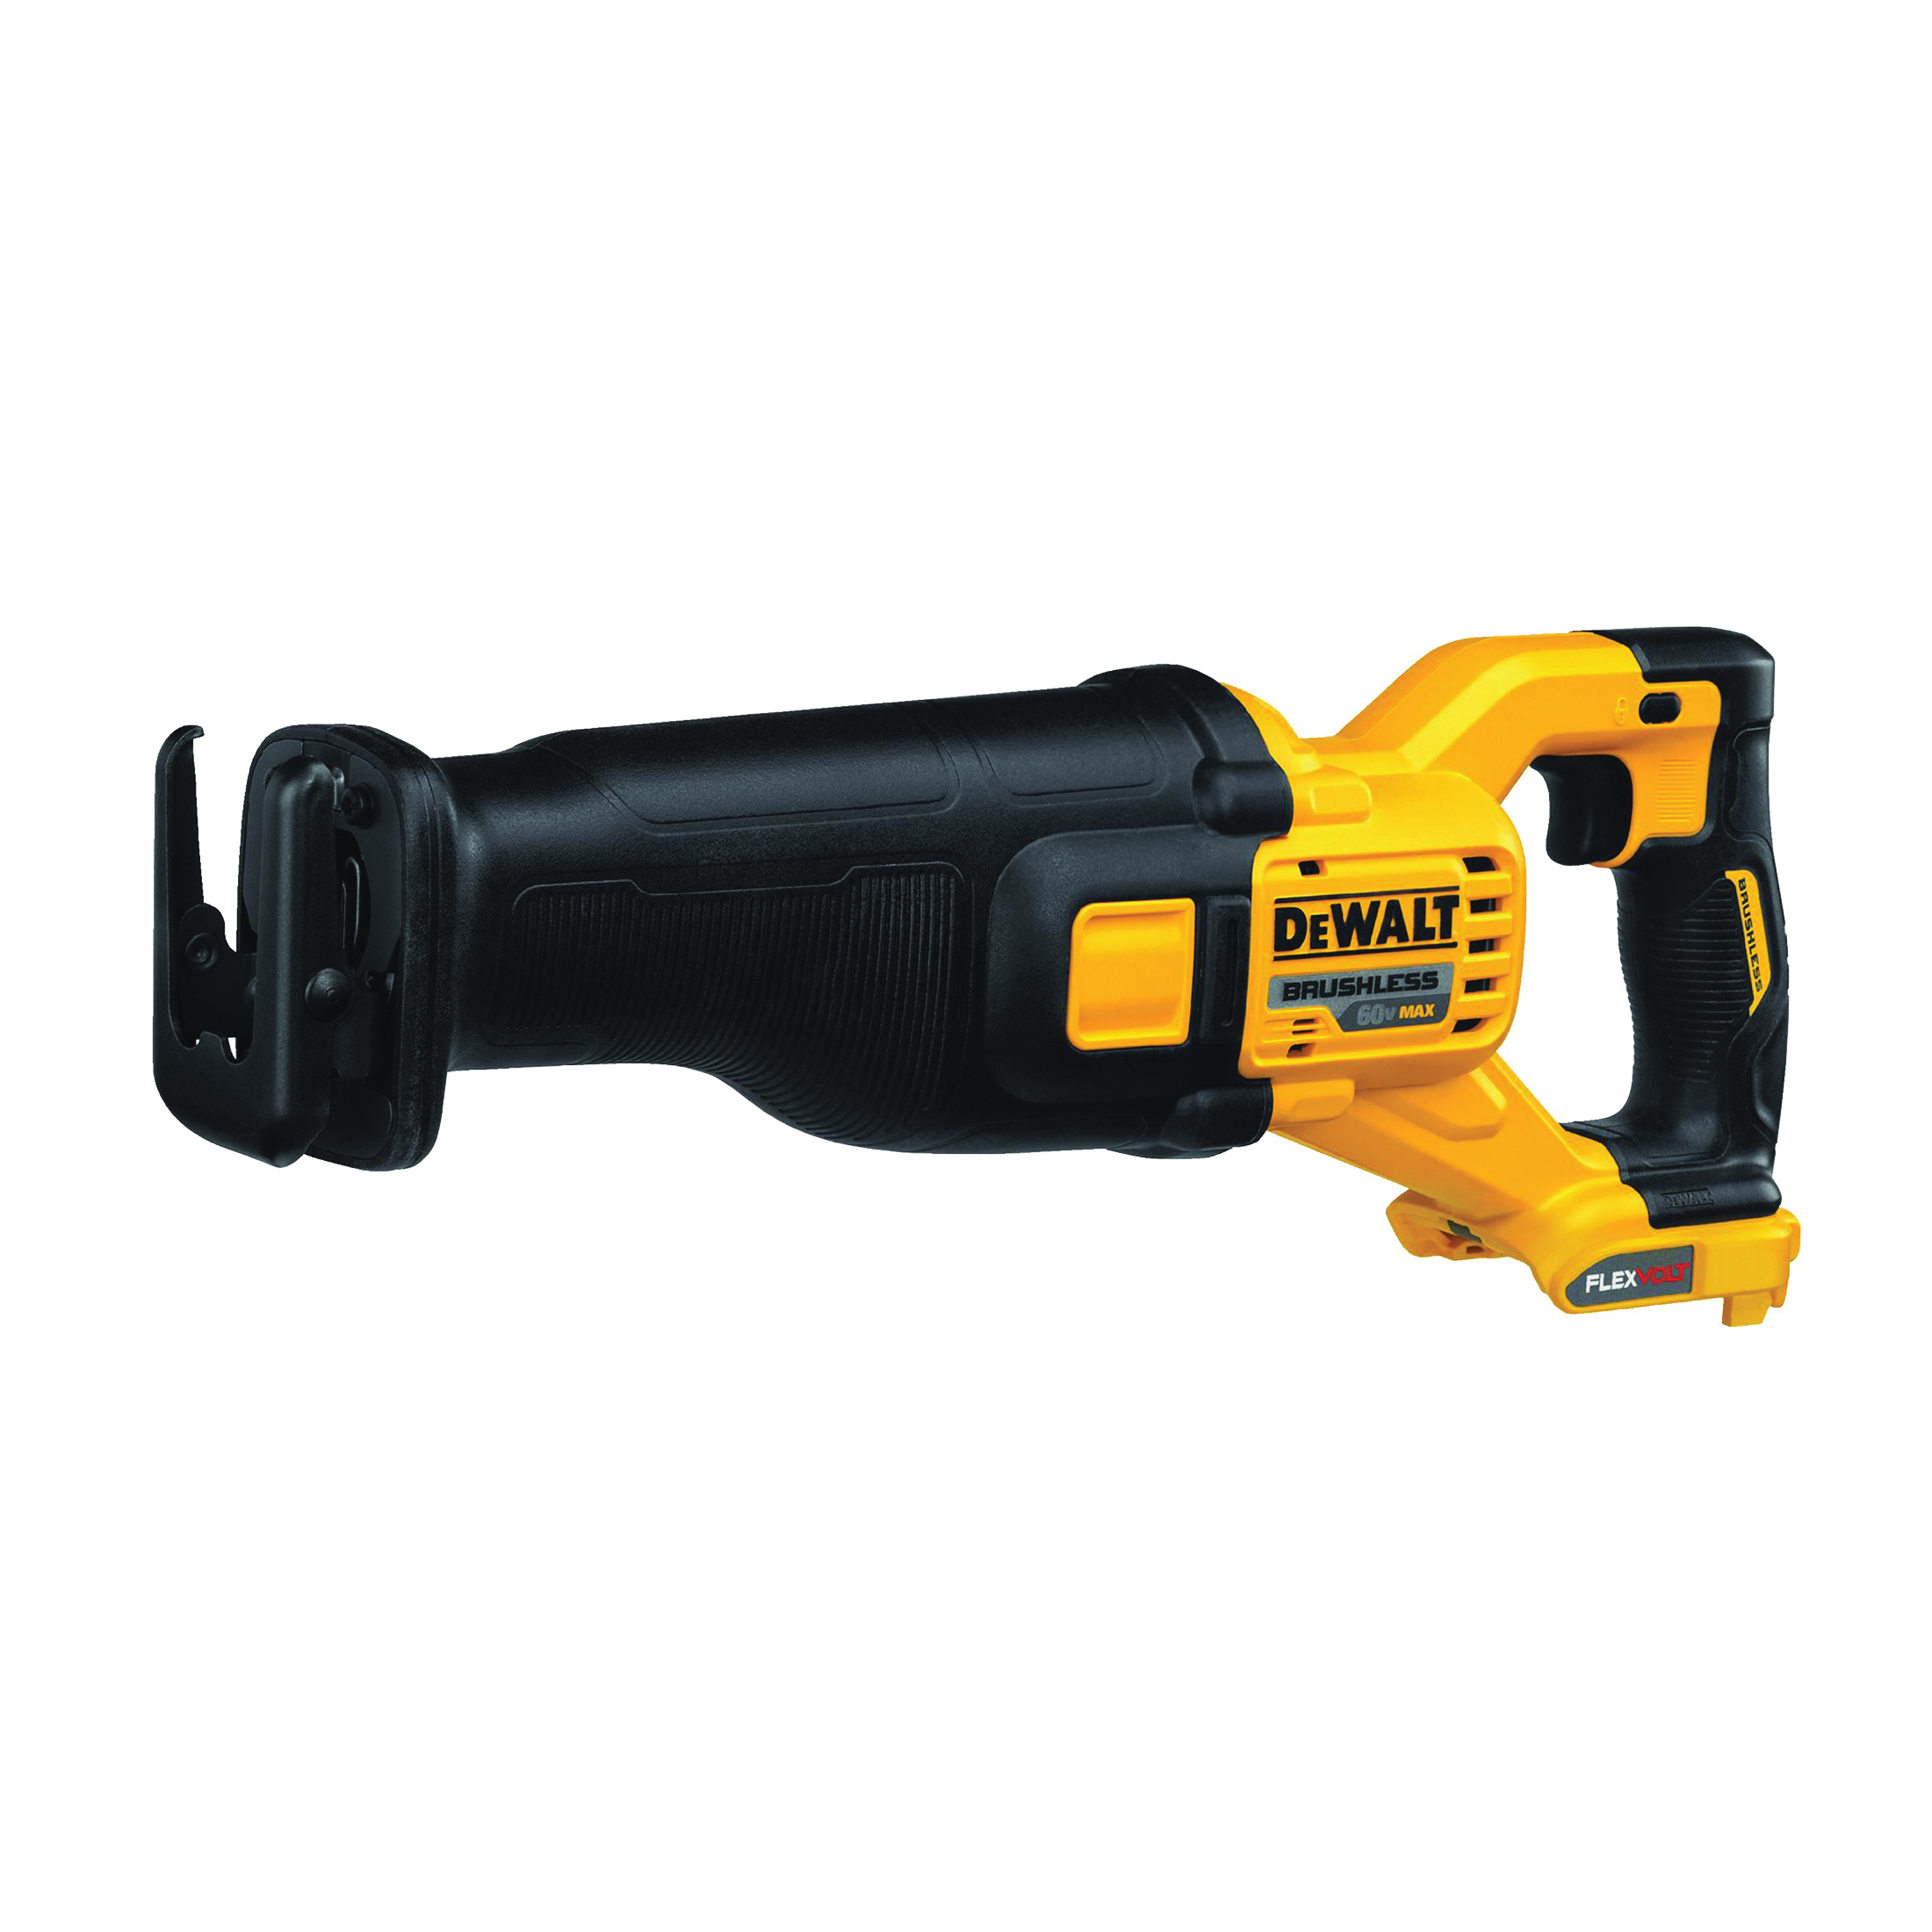 Picture of DeWALT DCS388B Reciprocating Saw, Bare Tool, 60 V Battery, 1-1/8 in L Stroke, 0 to 3000 SPM, Battery Included: No